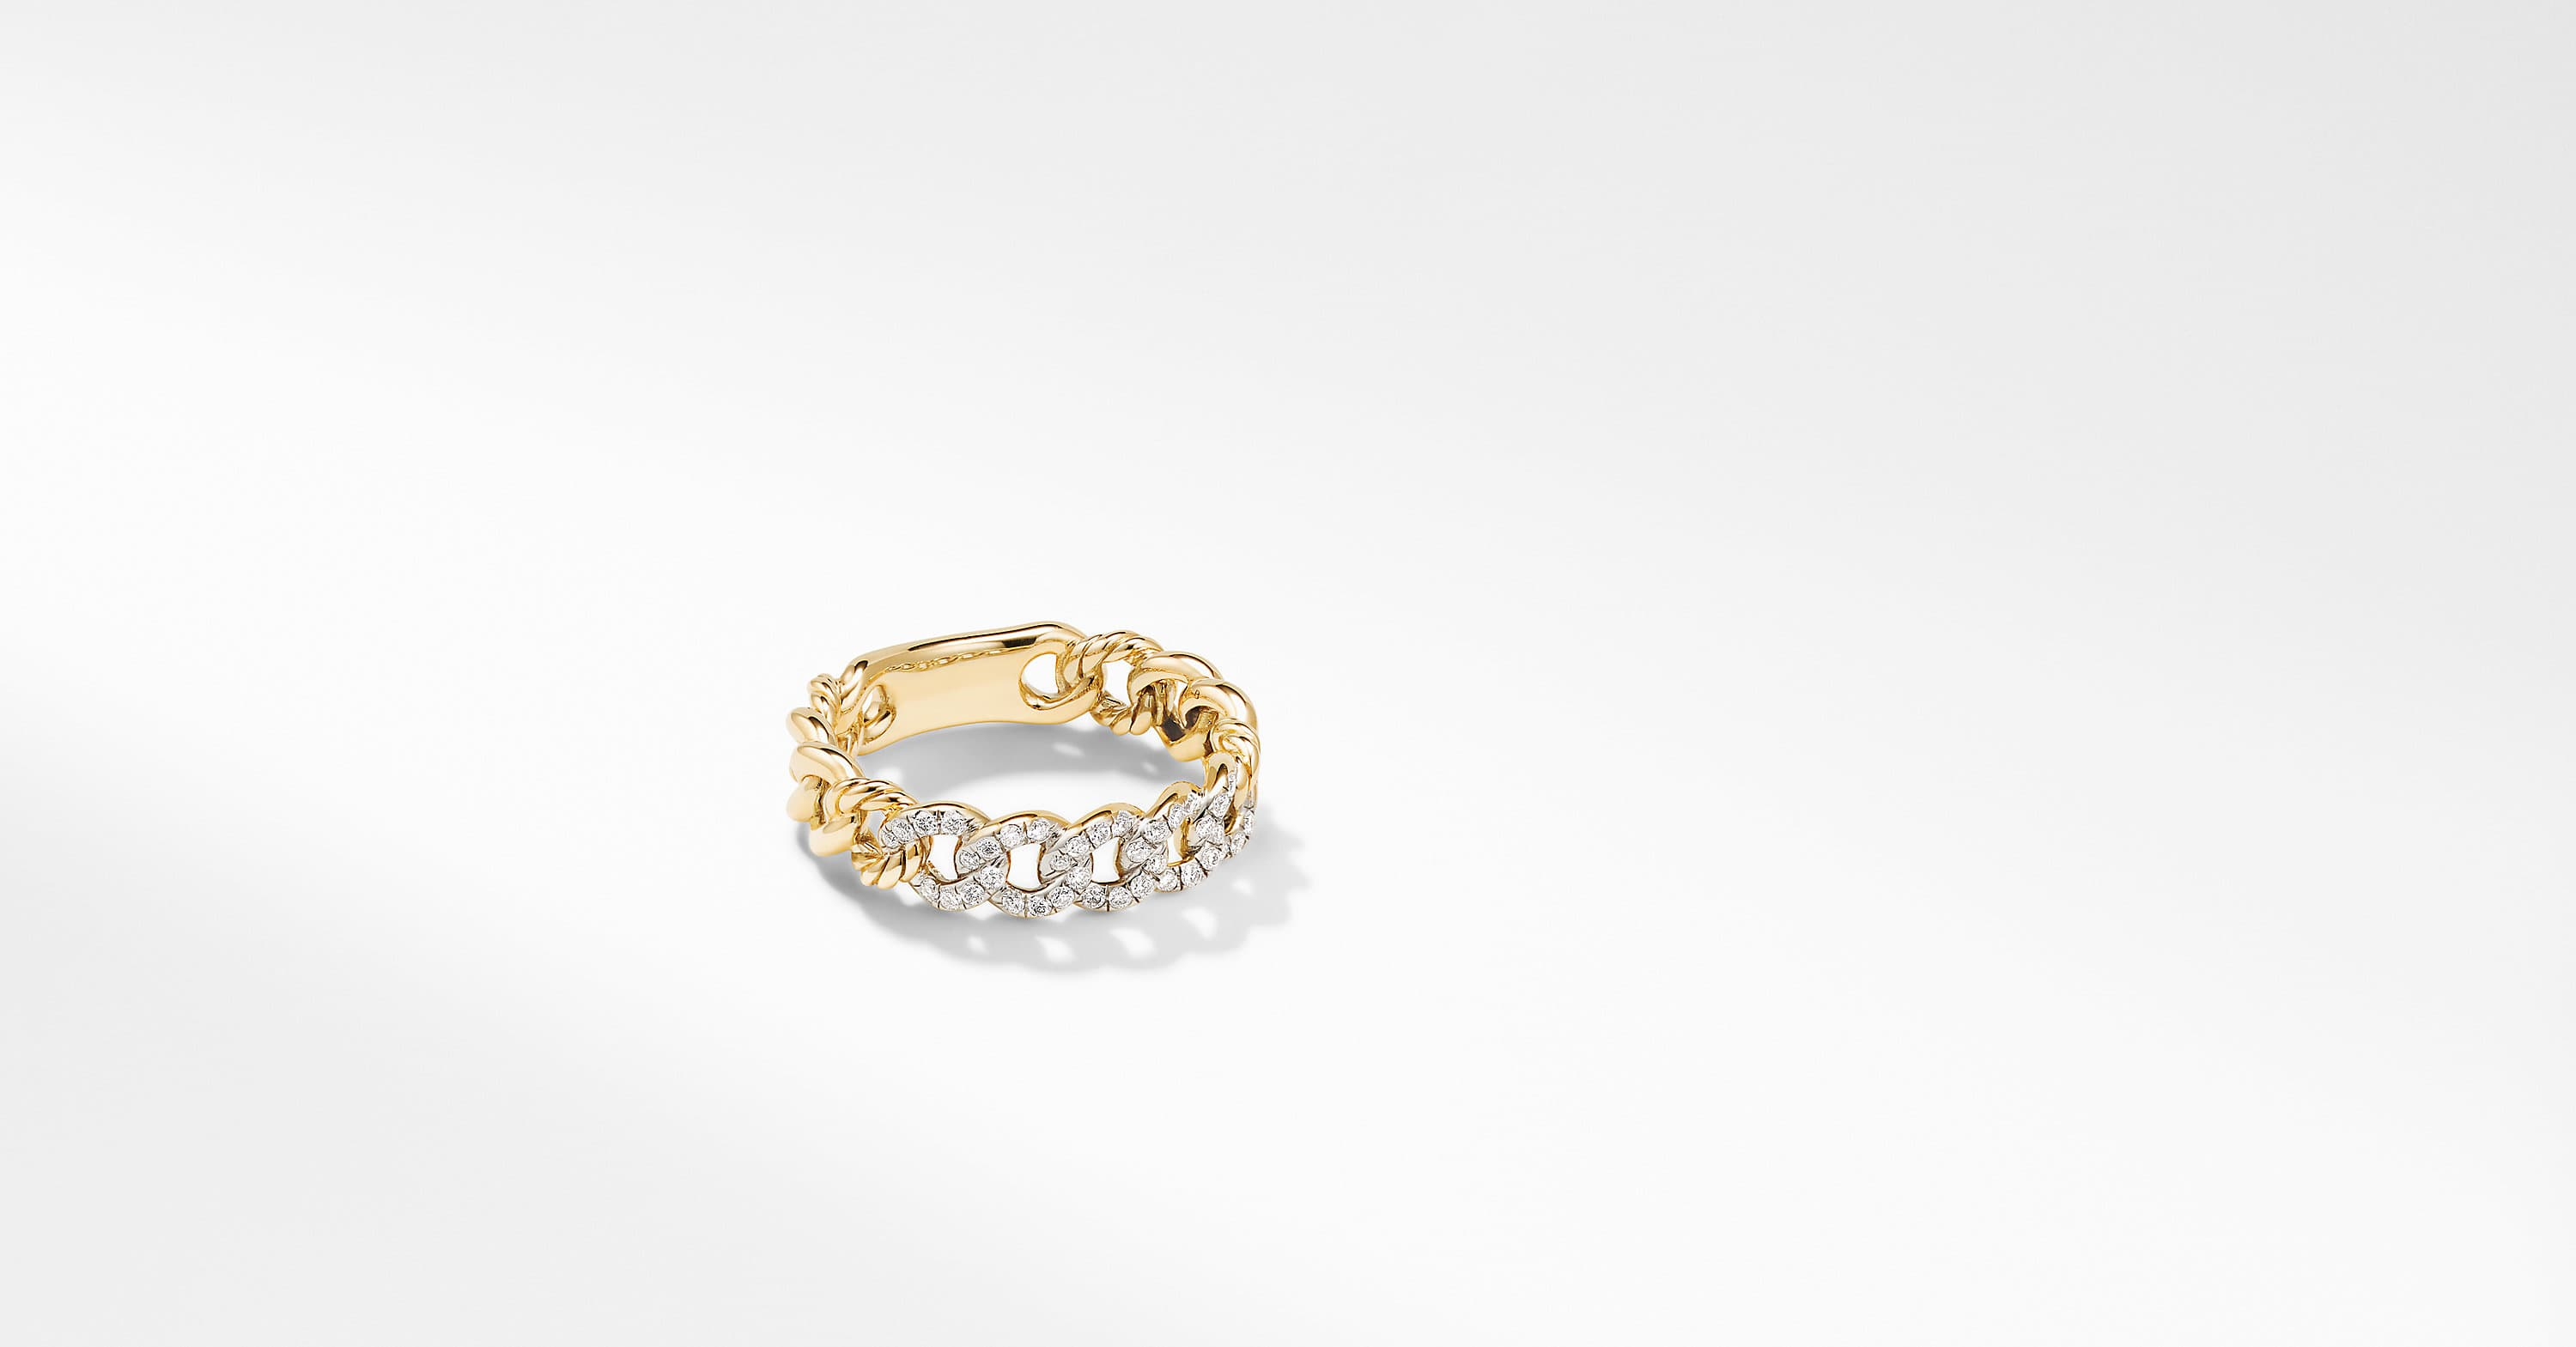 Belmont Curb Link Narrow Ring in 18K Yellow Gold with Pavé